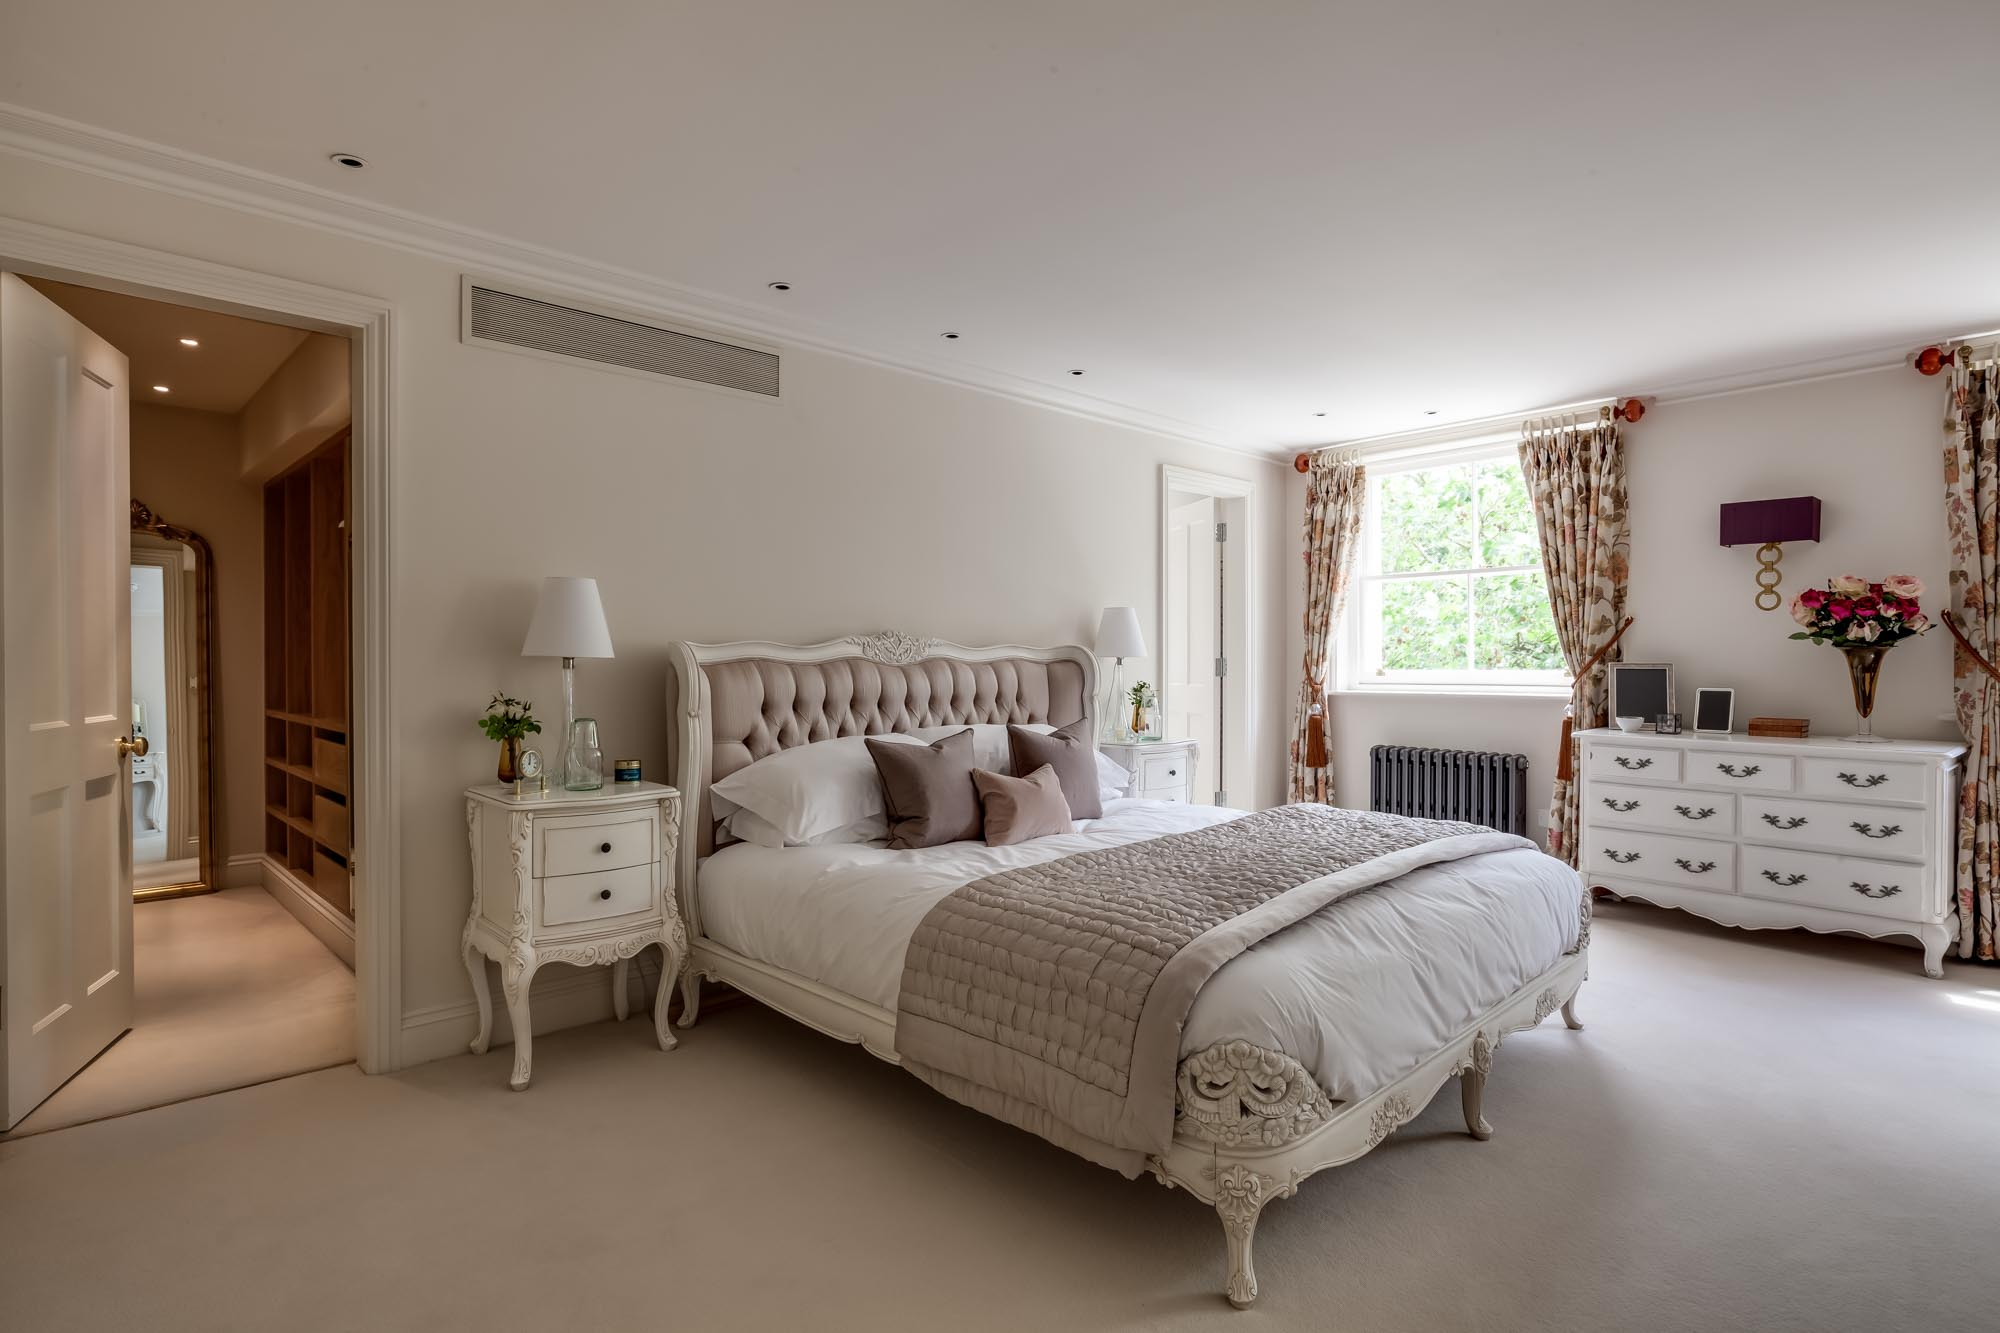 jonathan bond photography, luxury bedroom with ensuite, hyde park, london